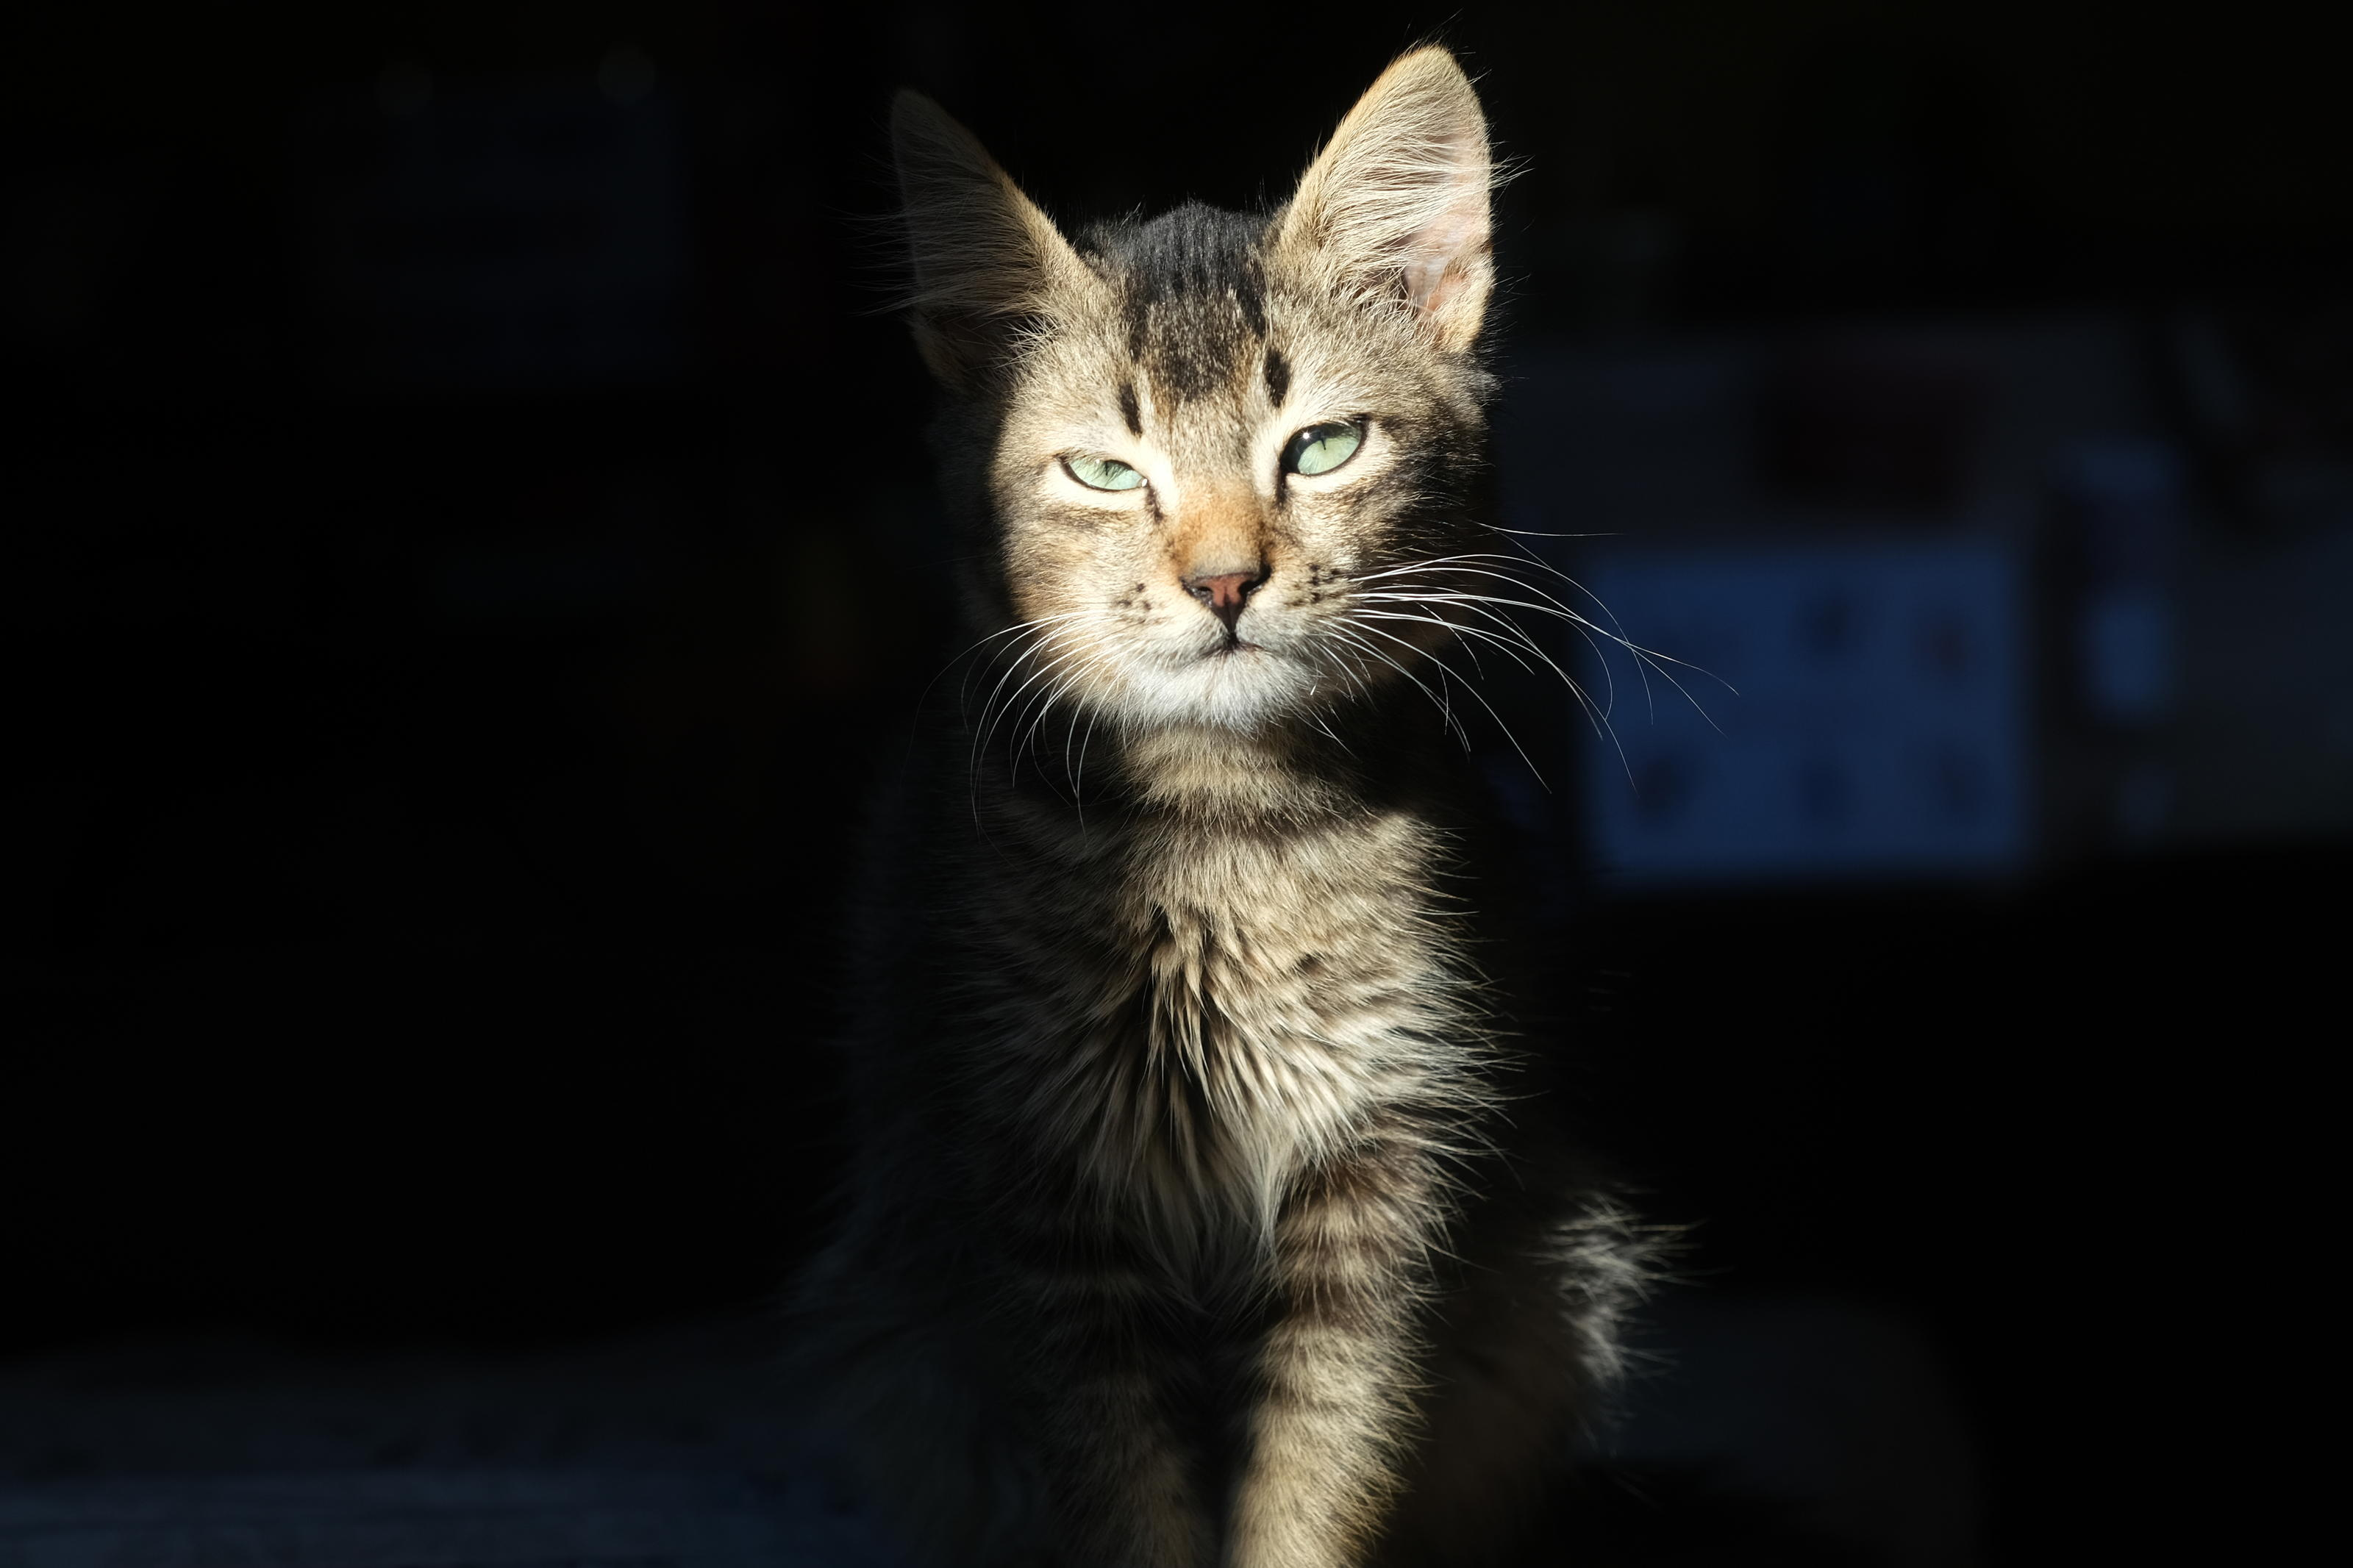 Honey the kitten standing in the sunlight